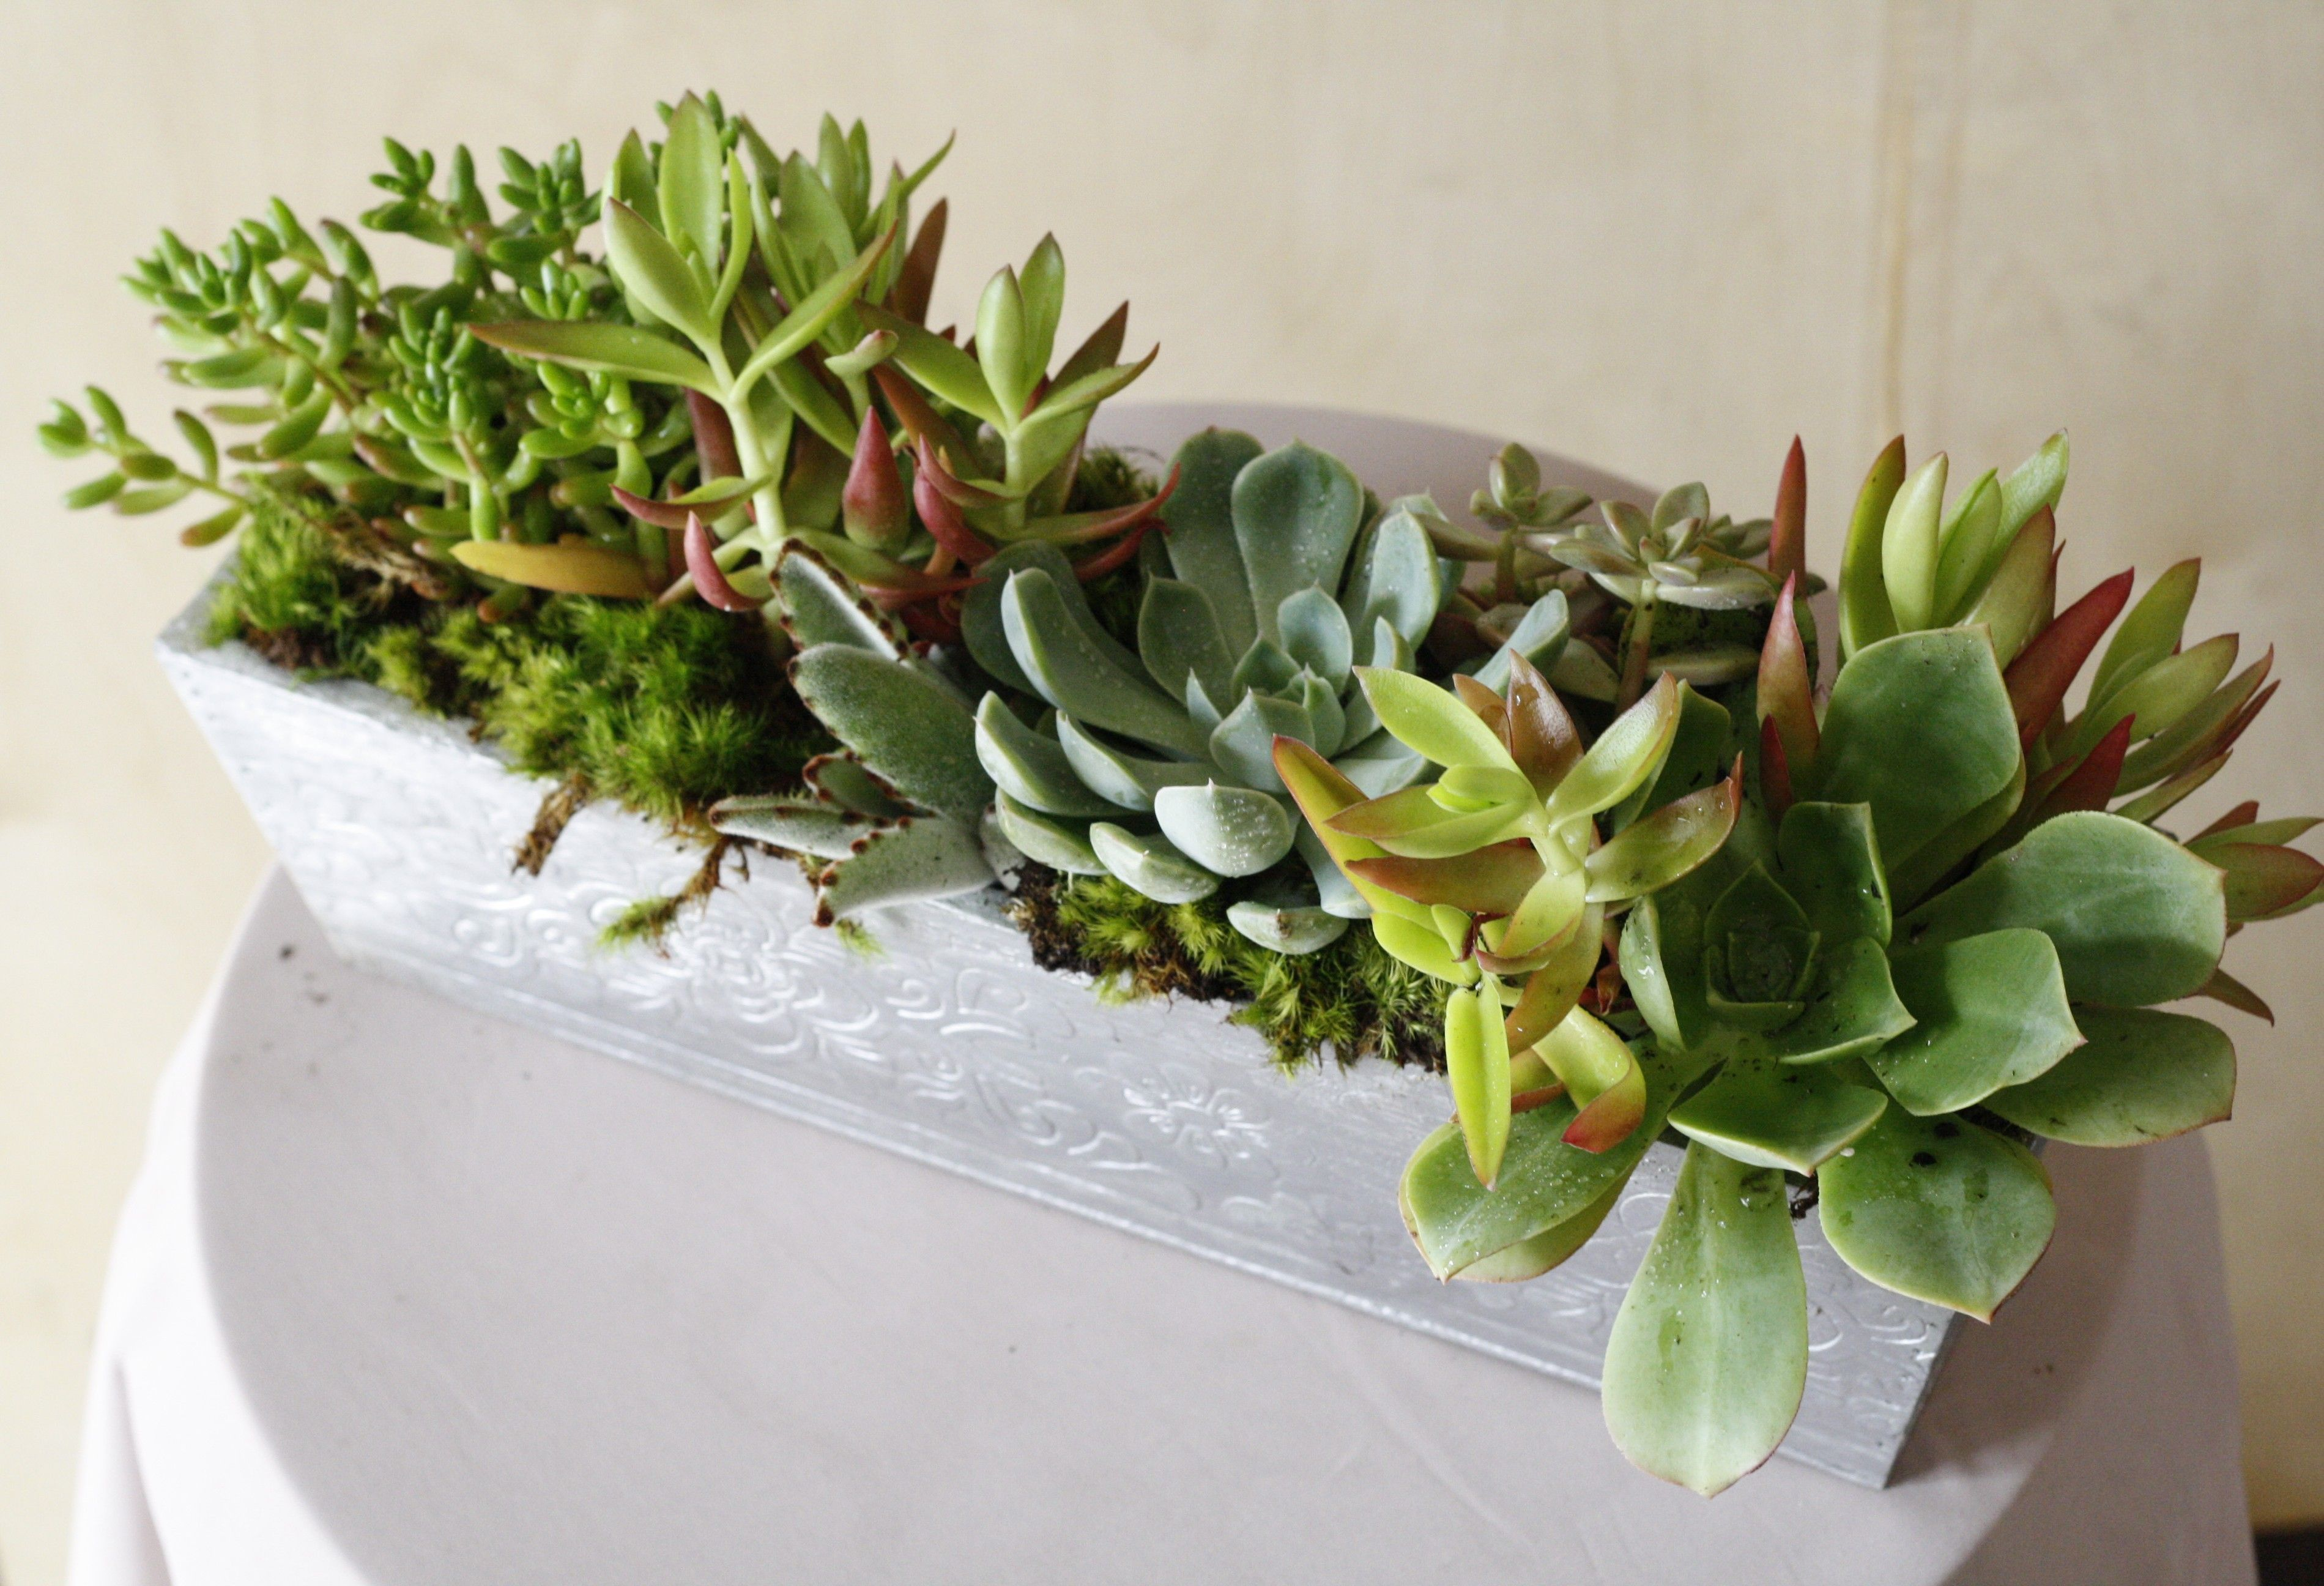 It S Succulentsunday Whether You D Like A Large Centerpiece On Your Dining Table Or Petite Pots Sprinkled Th Succulent Planter Planter Centerpiece Succulents